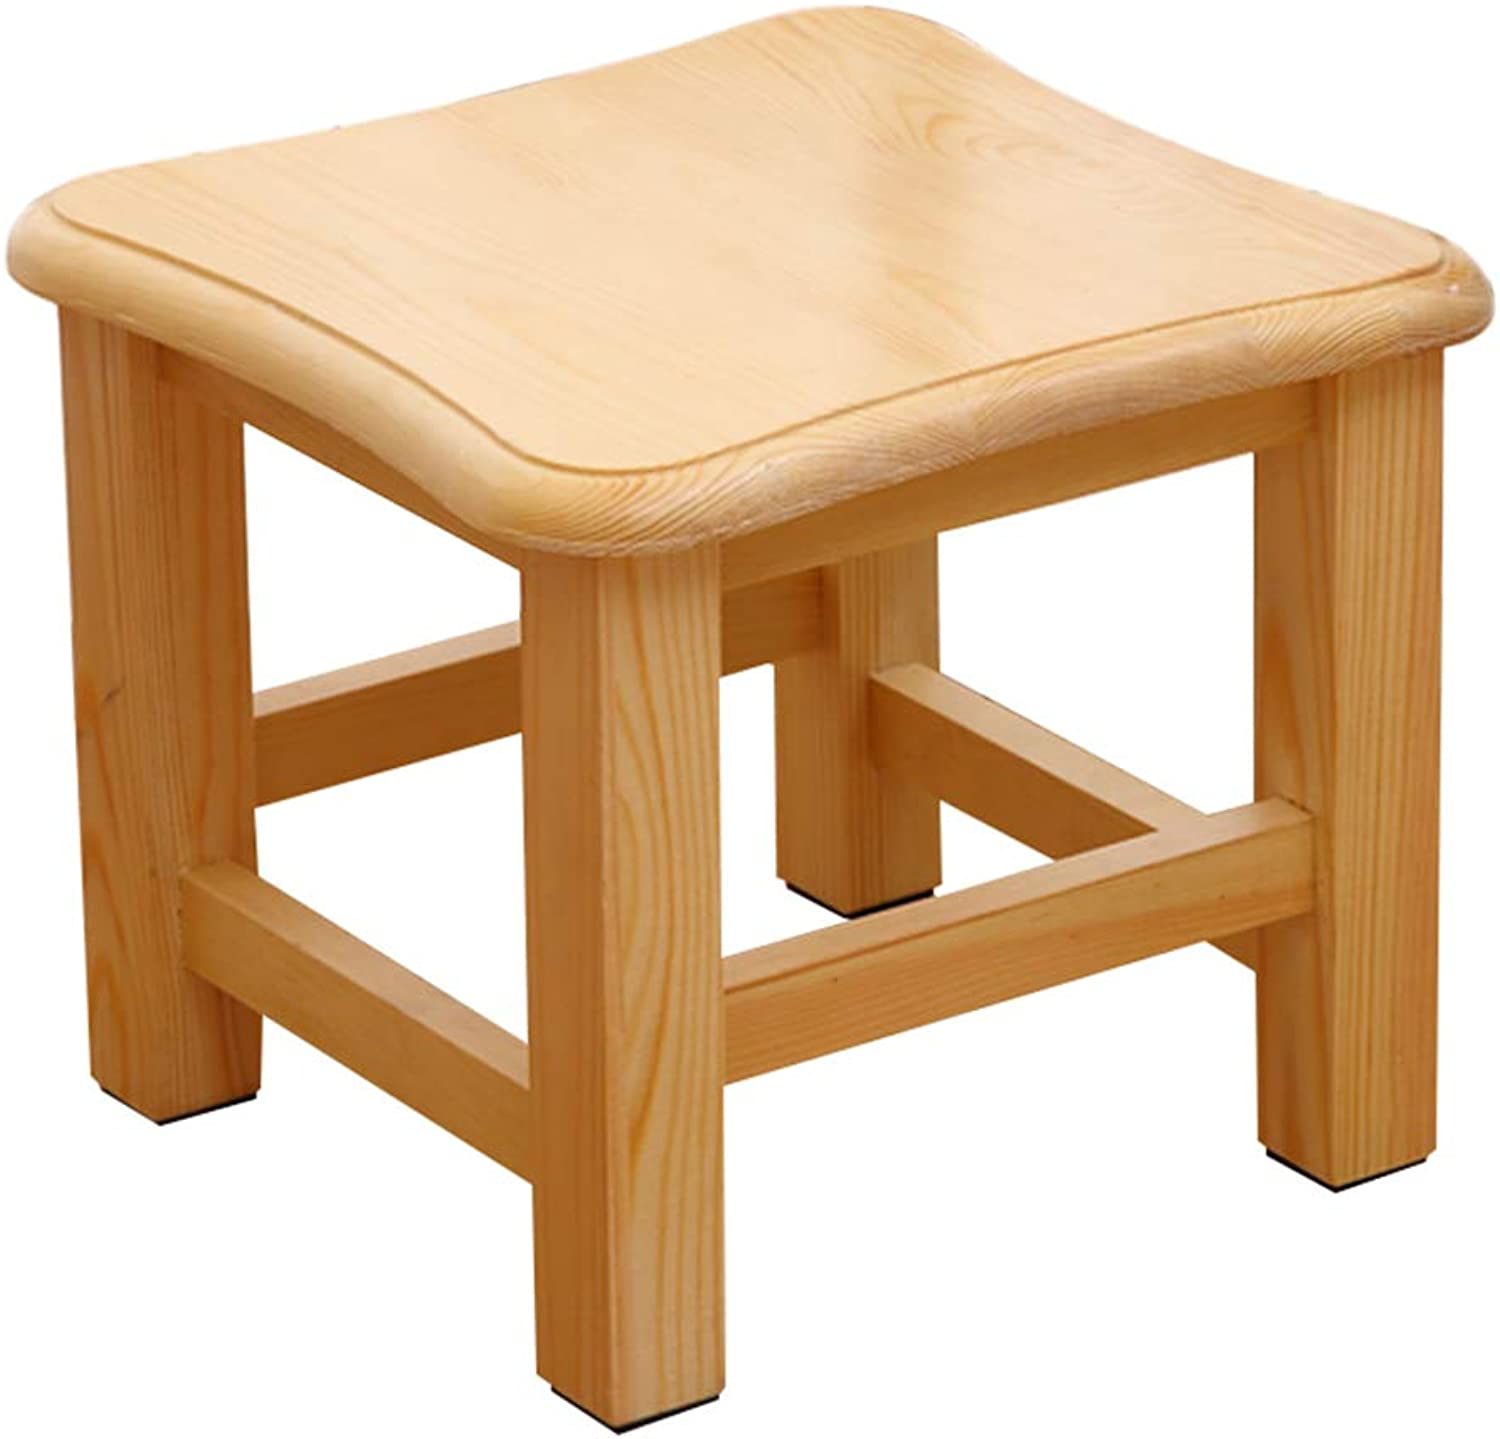 Stool  shoe bench, solid wood small square, living room low, light, formaldehyde free